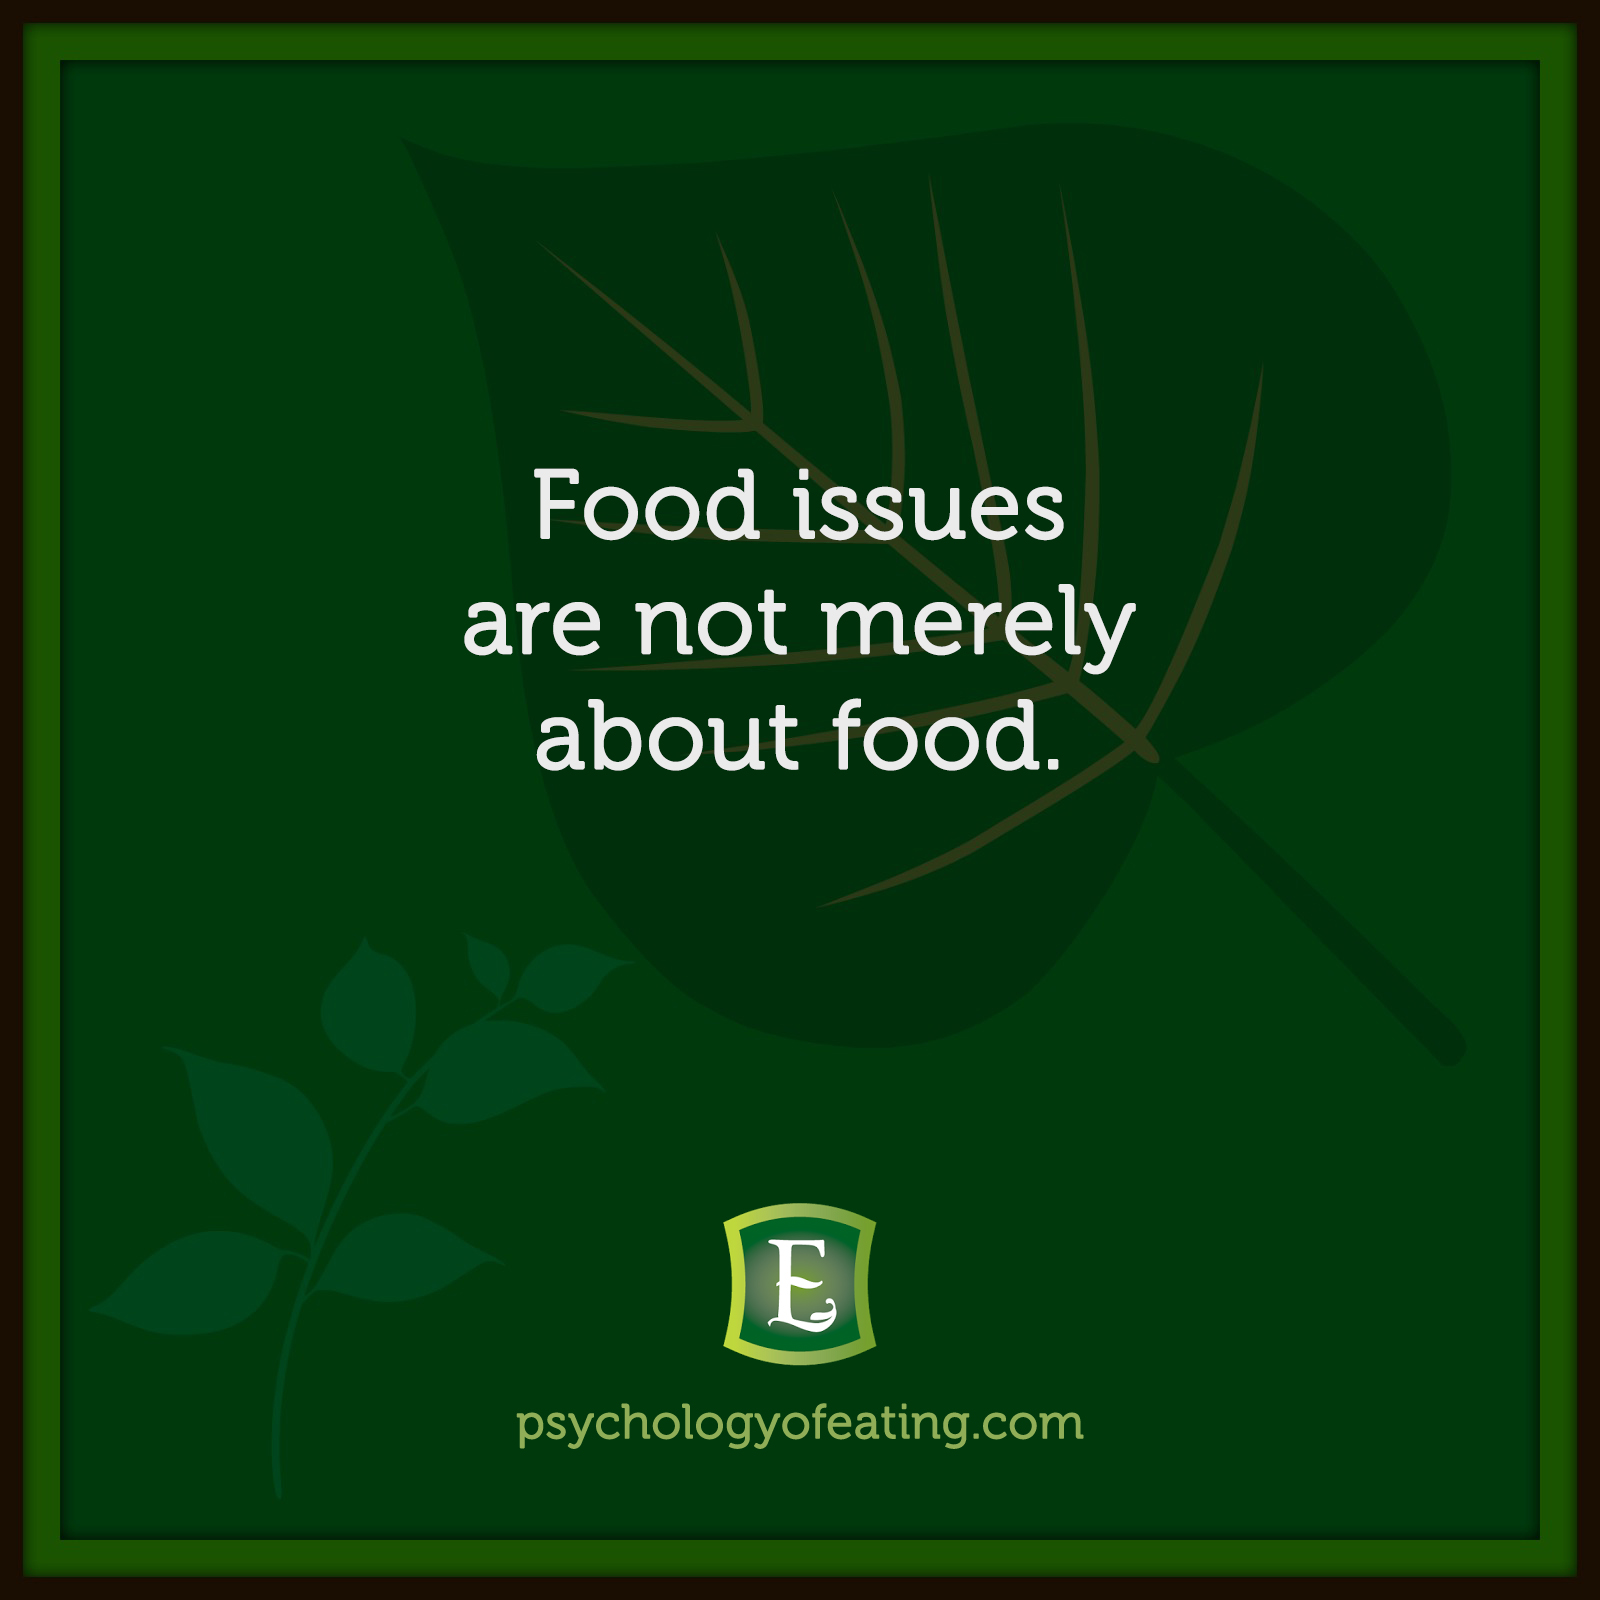 Food issues are not merely about food. #health #nutrition #eatingpsychology #IPE